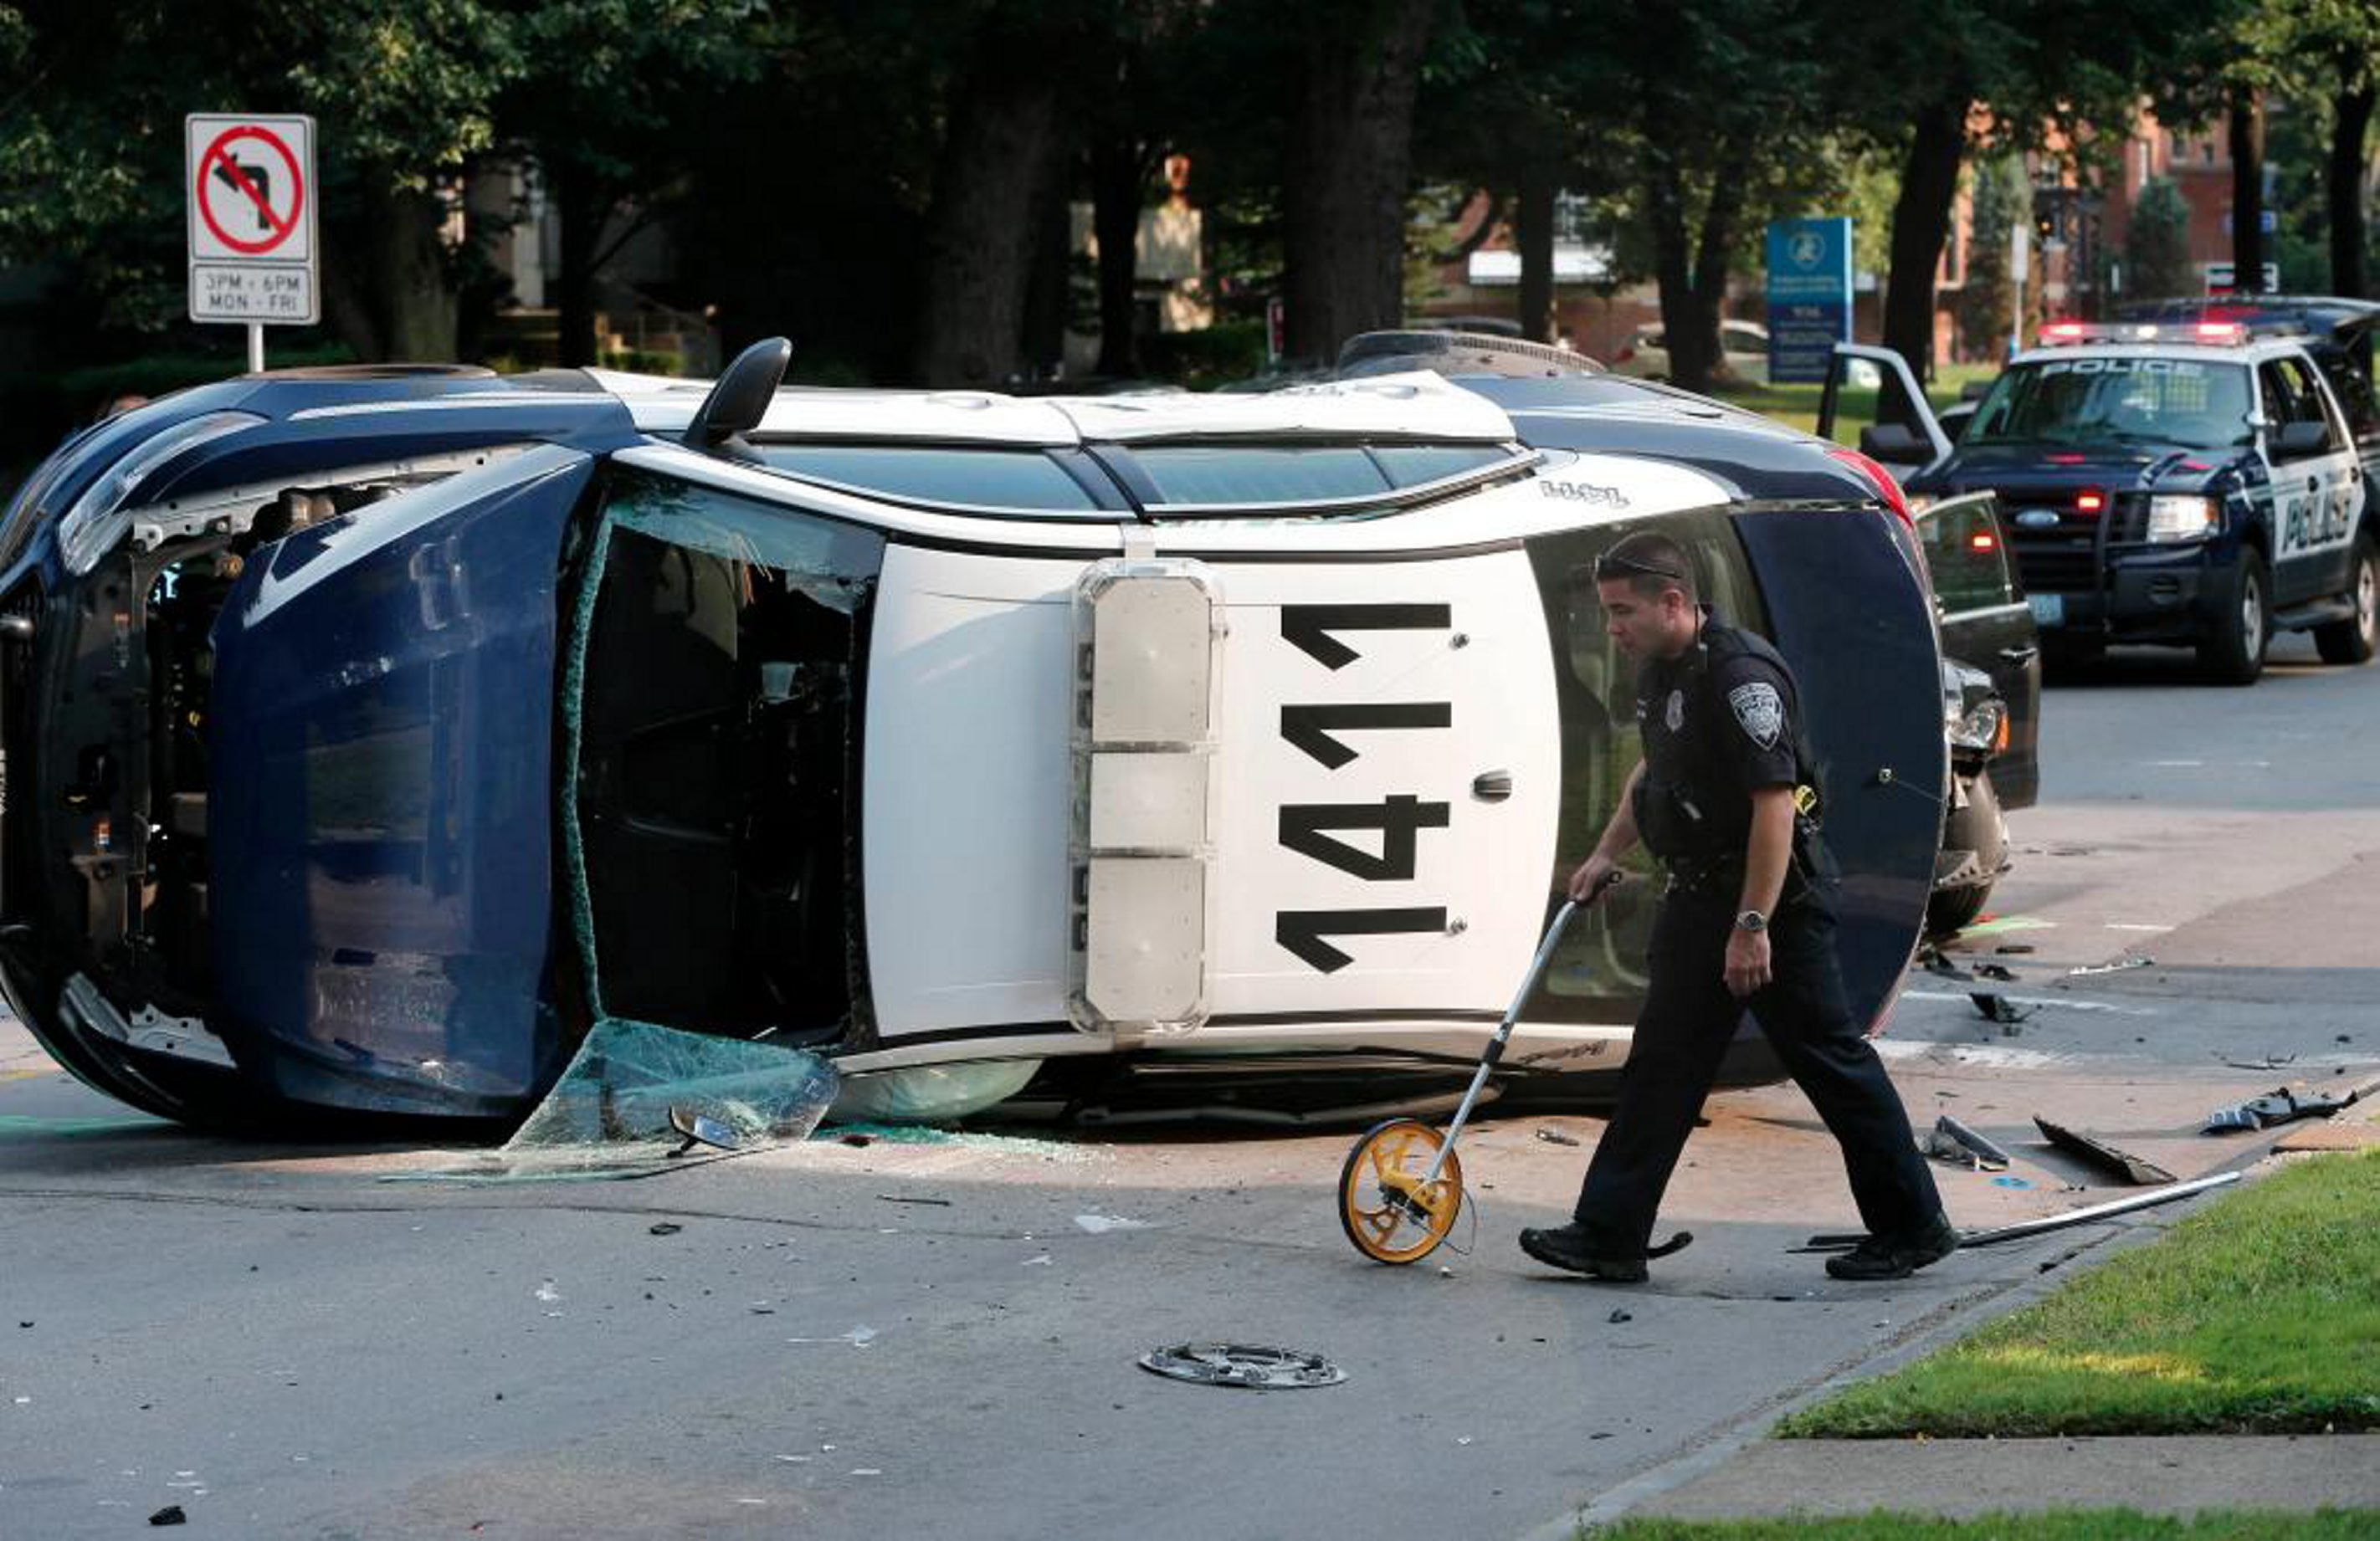 Police investigate after a collision at Delaware Avenue and Bryant Street left an NFTA police vehicle on its side Friday morning, Aug. 8, 2014. (Derek Gee/Buffalo News).